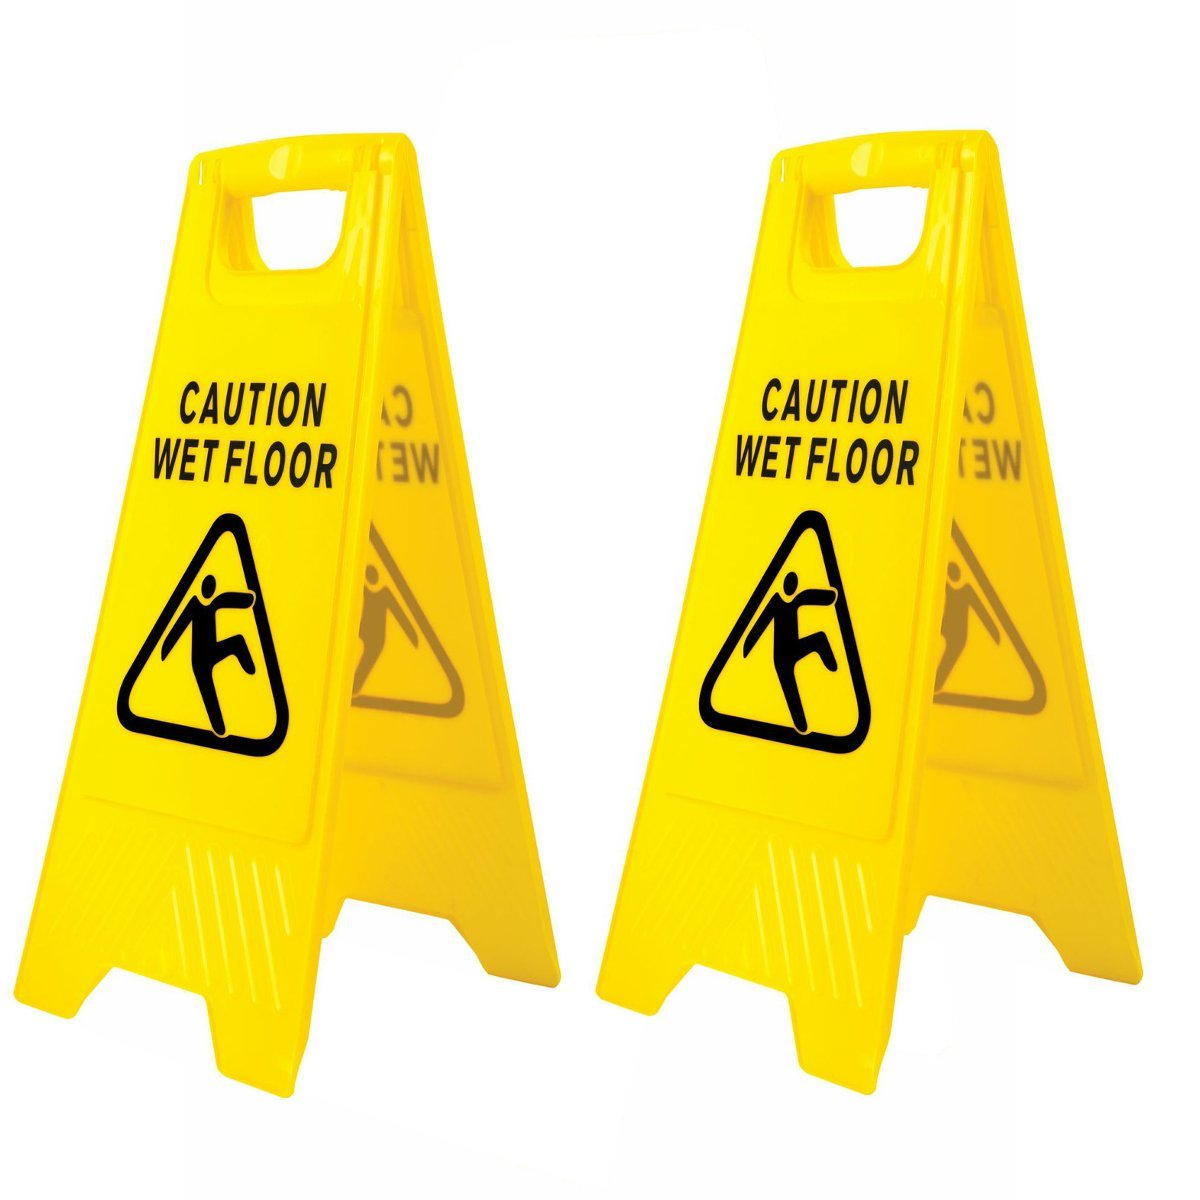 caution janitorial large p canada ca sign products floor and maintenance rubbermaid wet